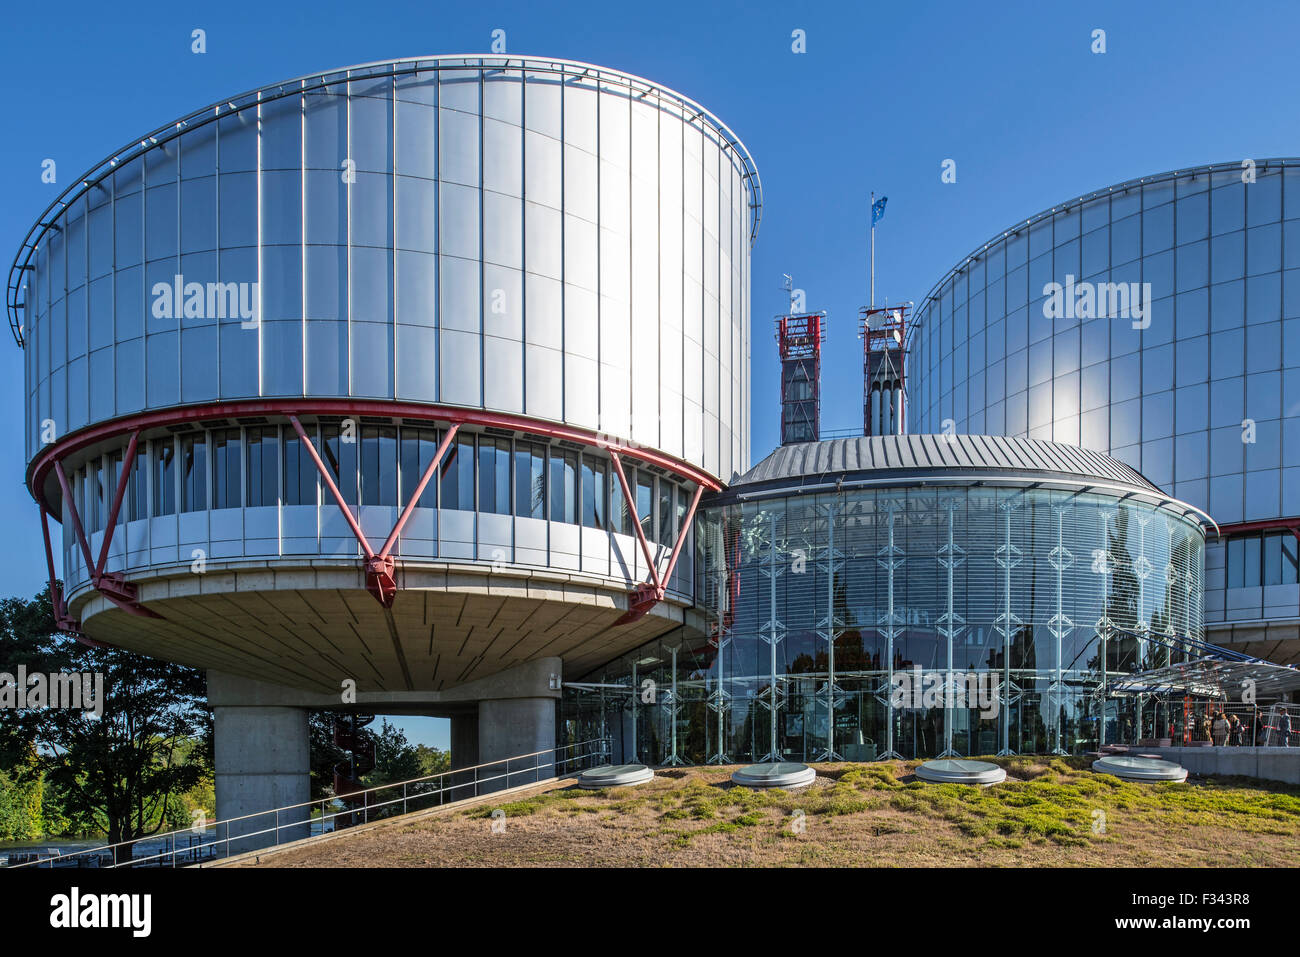 Building of the European Court of Human Rights / ECtHR at Strasbourg, France - Stock Image